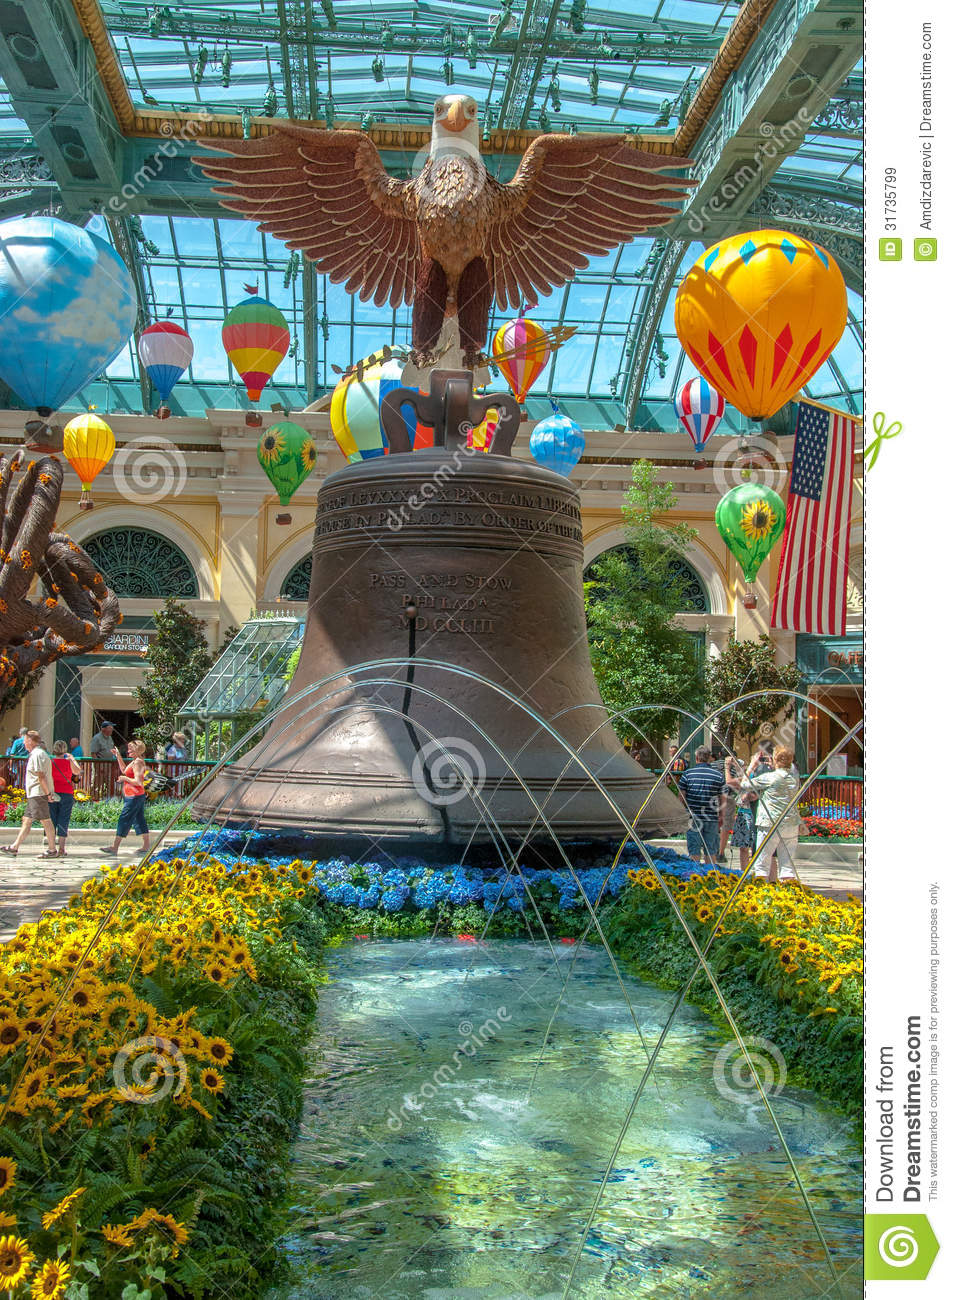 Bellagio conservatory and botanical gardens editorial for Garden statues las vegas nv